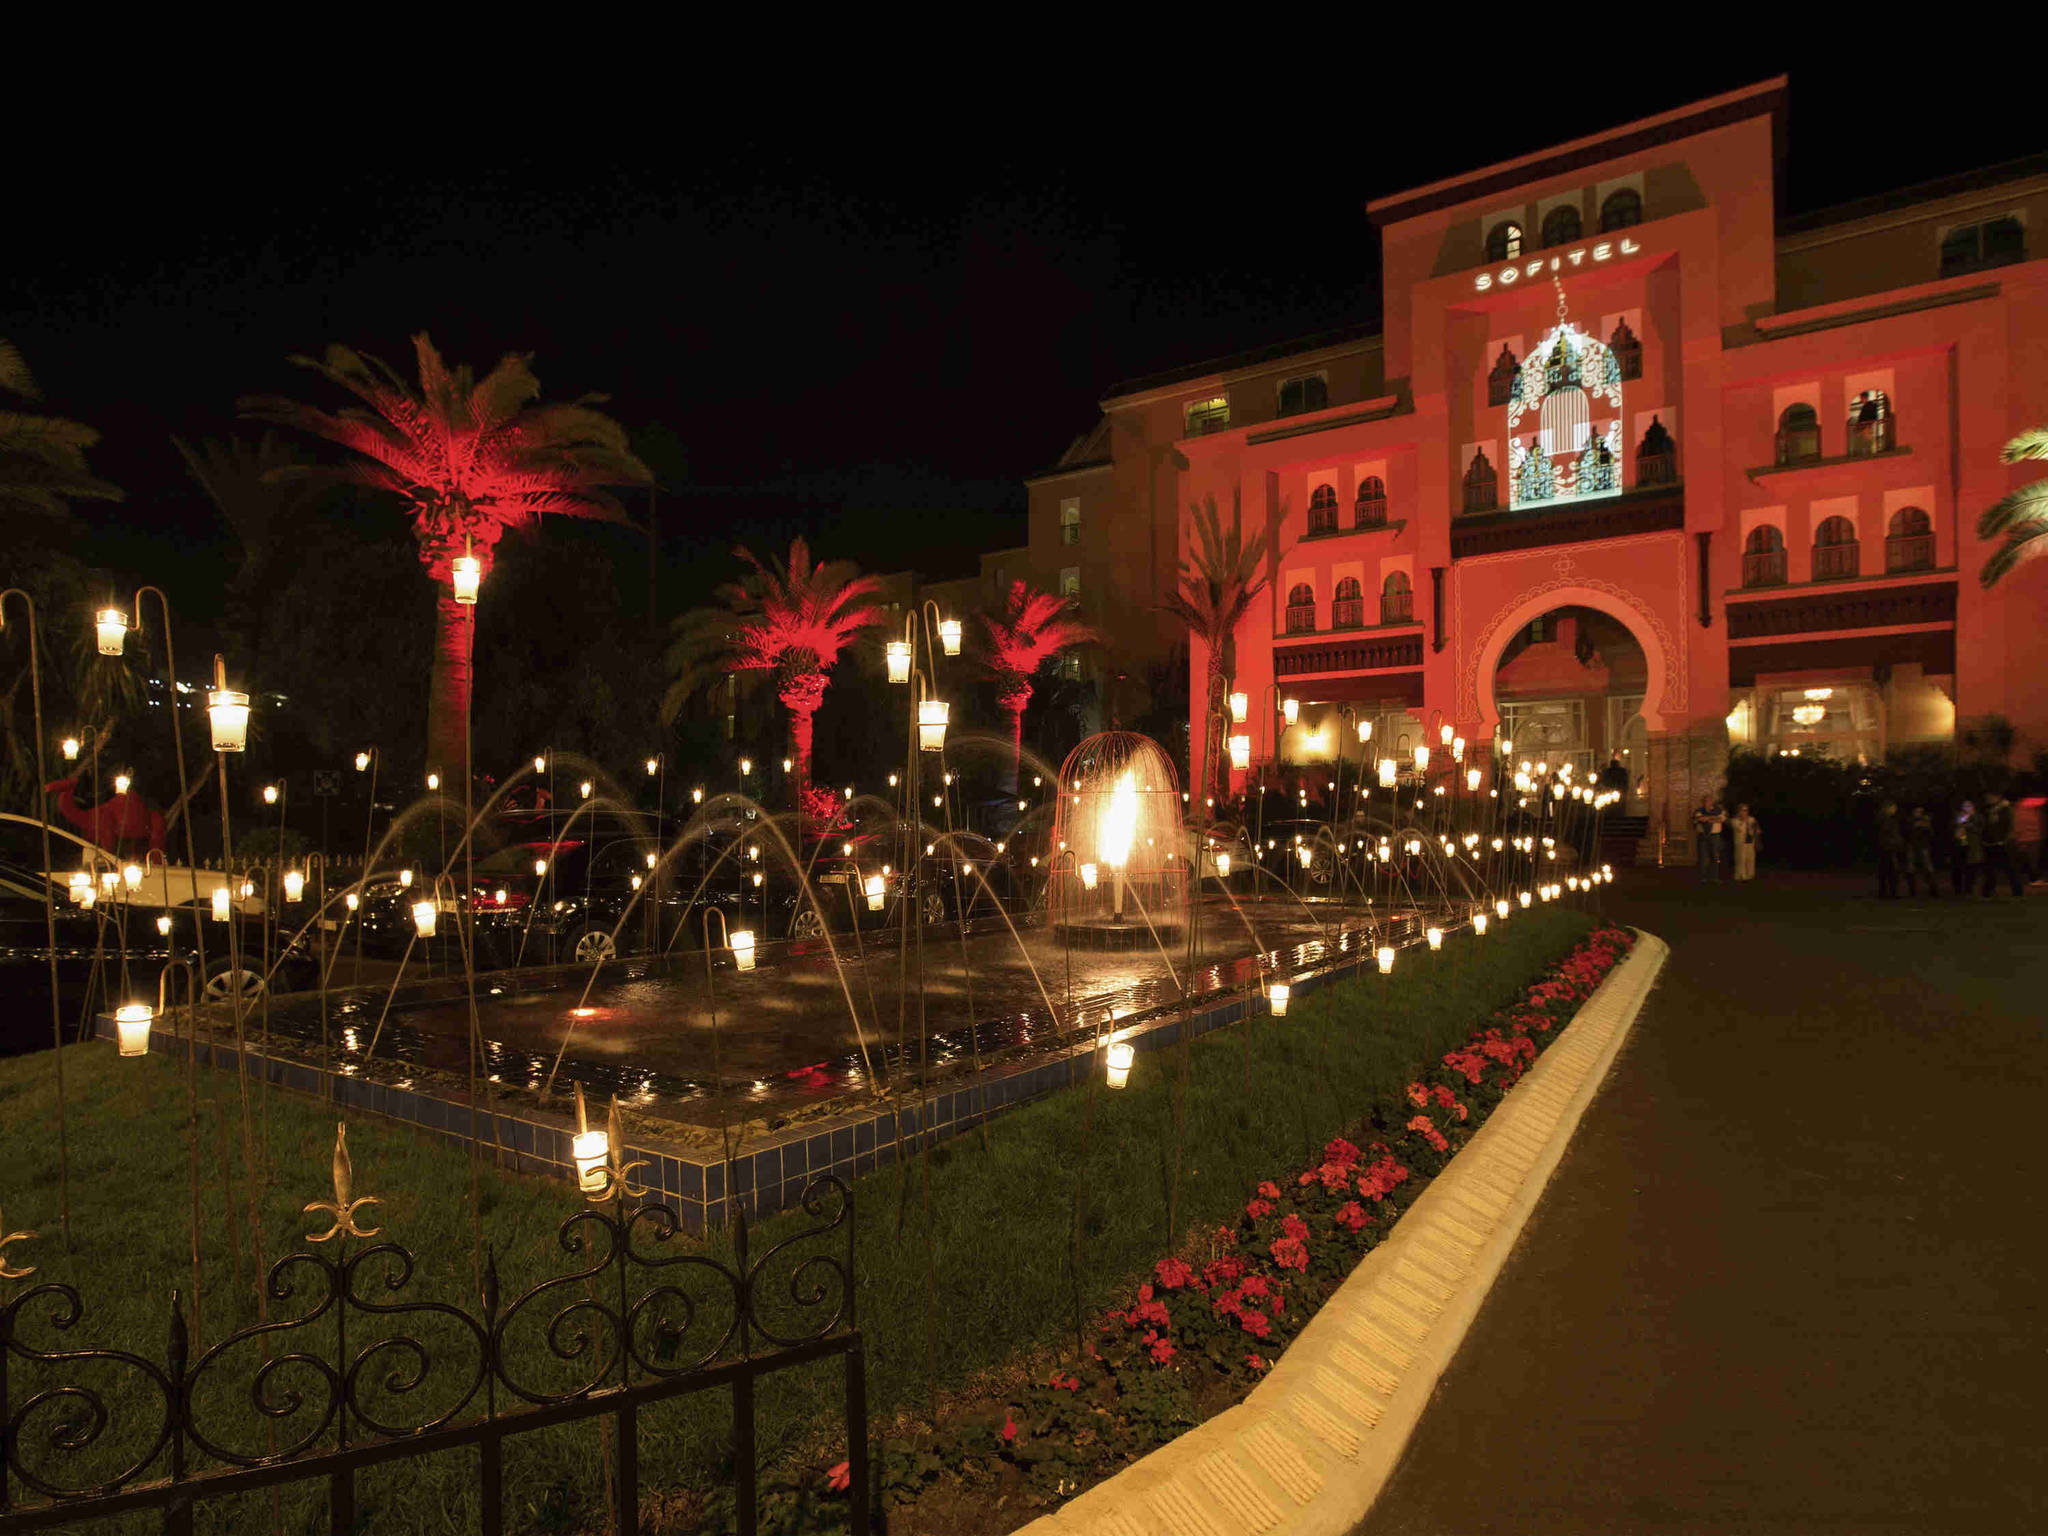 Hotel – Sofitel Marrakech Palais Imperial